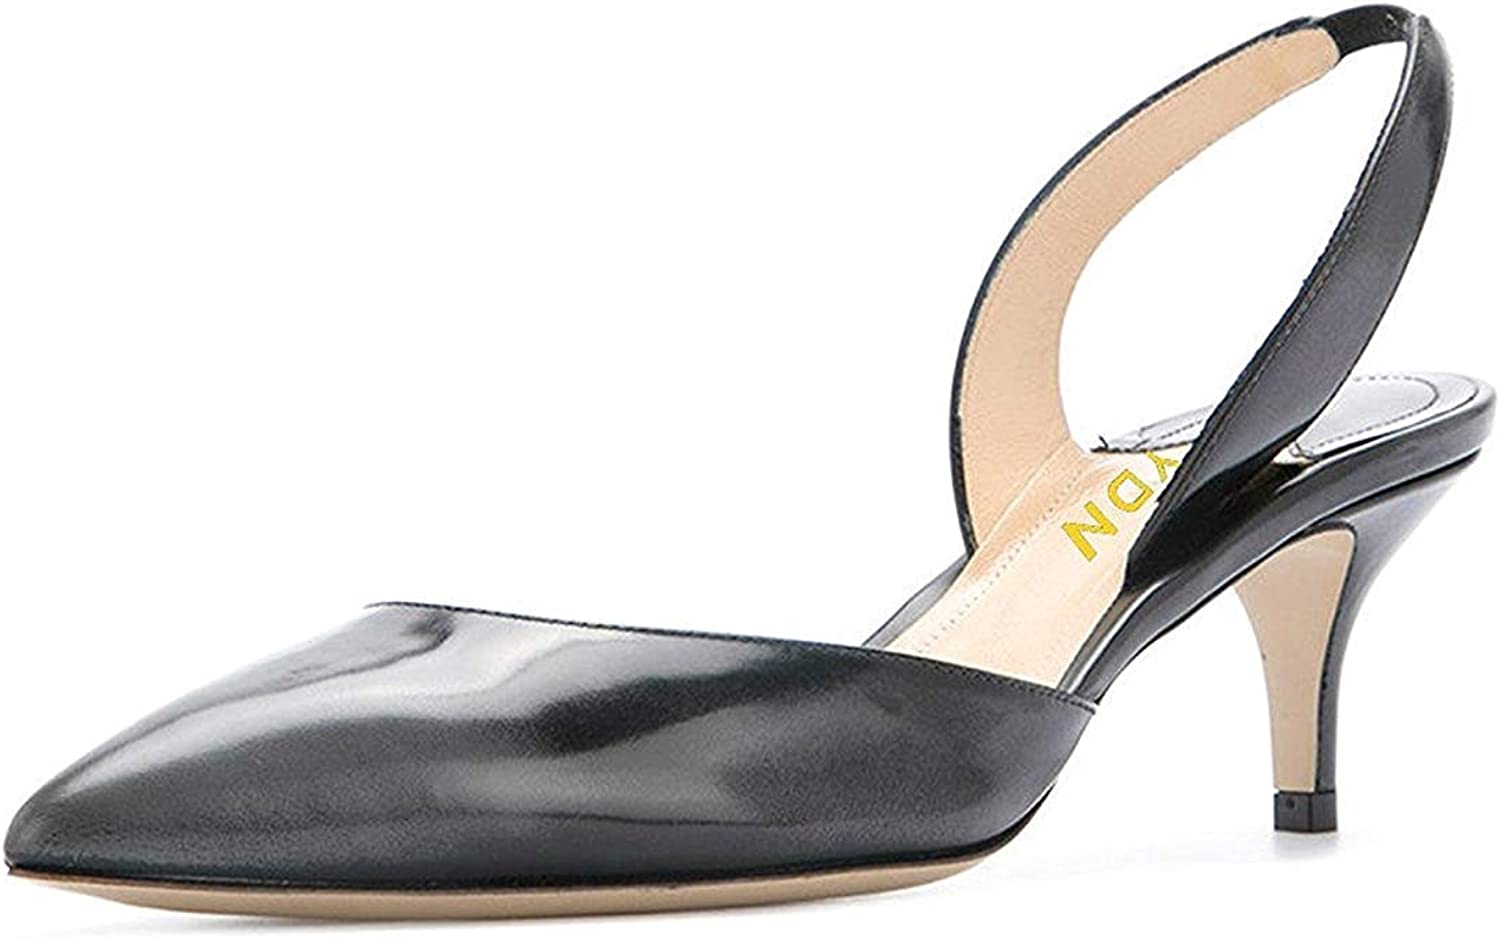 YDN Women's Formal Pointy Toe Low Heels Pumps Kitten Suede D'Orsay Sandals with Slingback